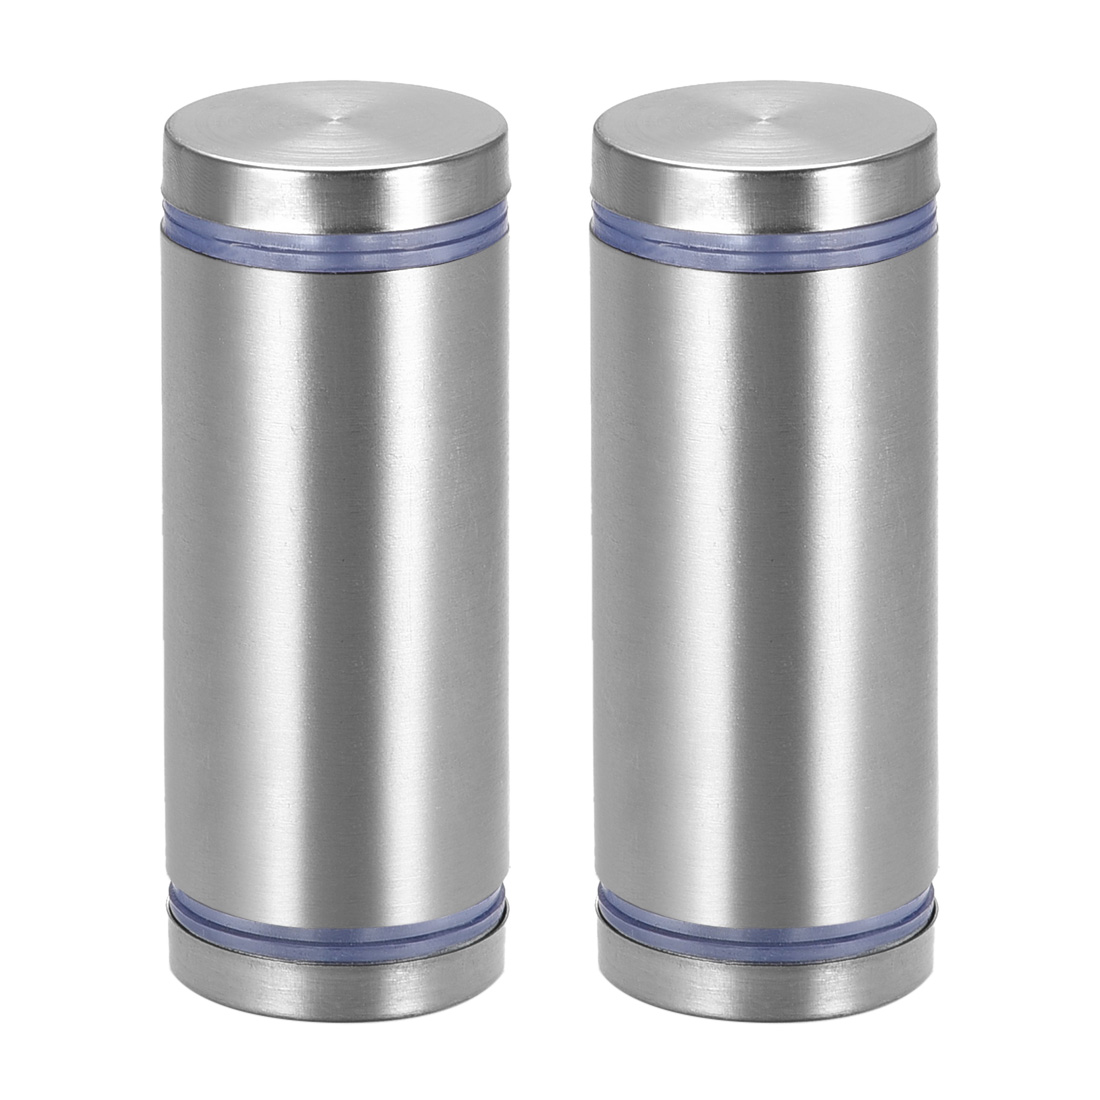 Glass Standoff Double Head Stainless Steel Standoff Holder 25mm x 65mm 2 Pcs